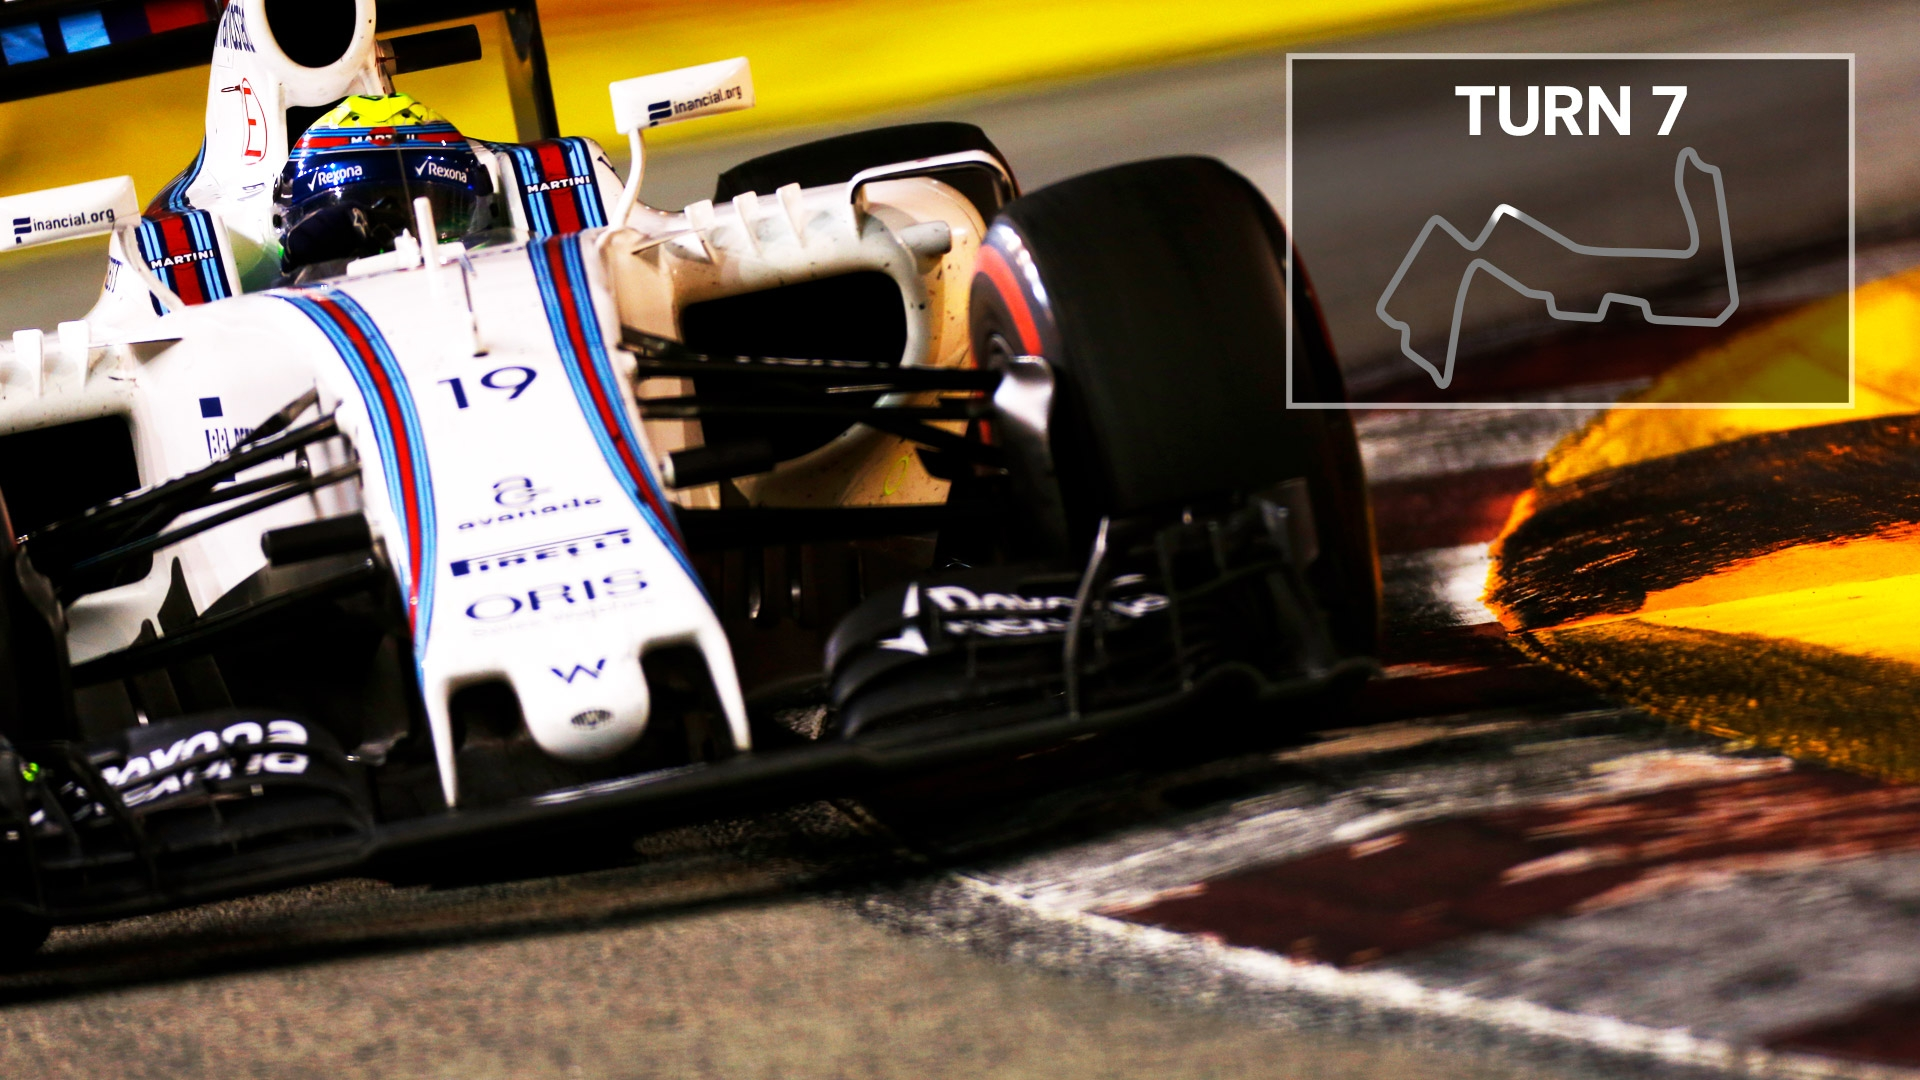 https://www.formula1.com/content/fom-website/en/latest/features/2017/9/need-to-know--singapore/_jcr_content/featureContent/image_0.img.jpg/1505212922305.jpg